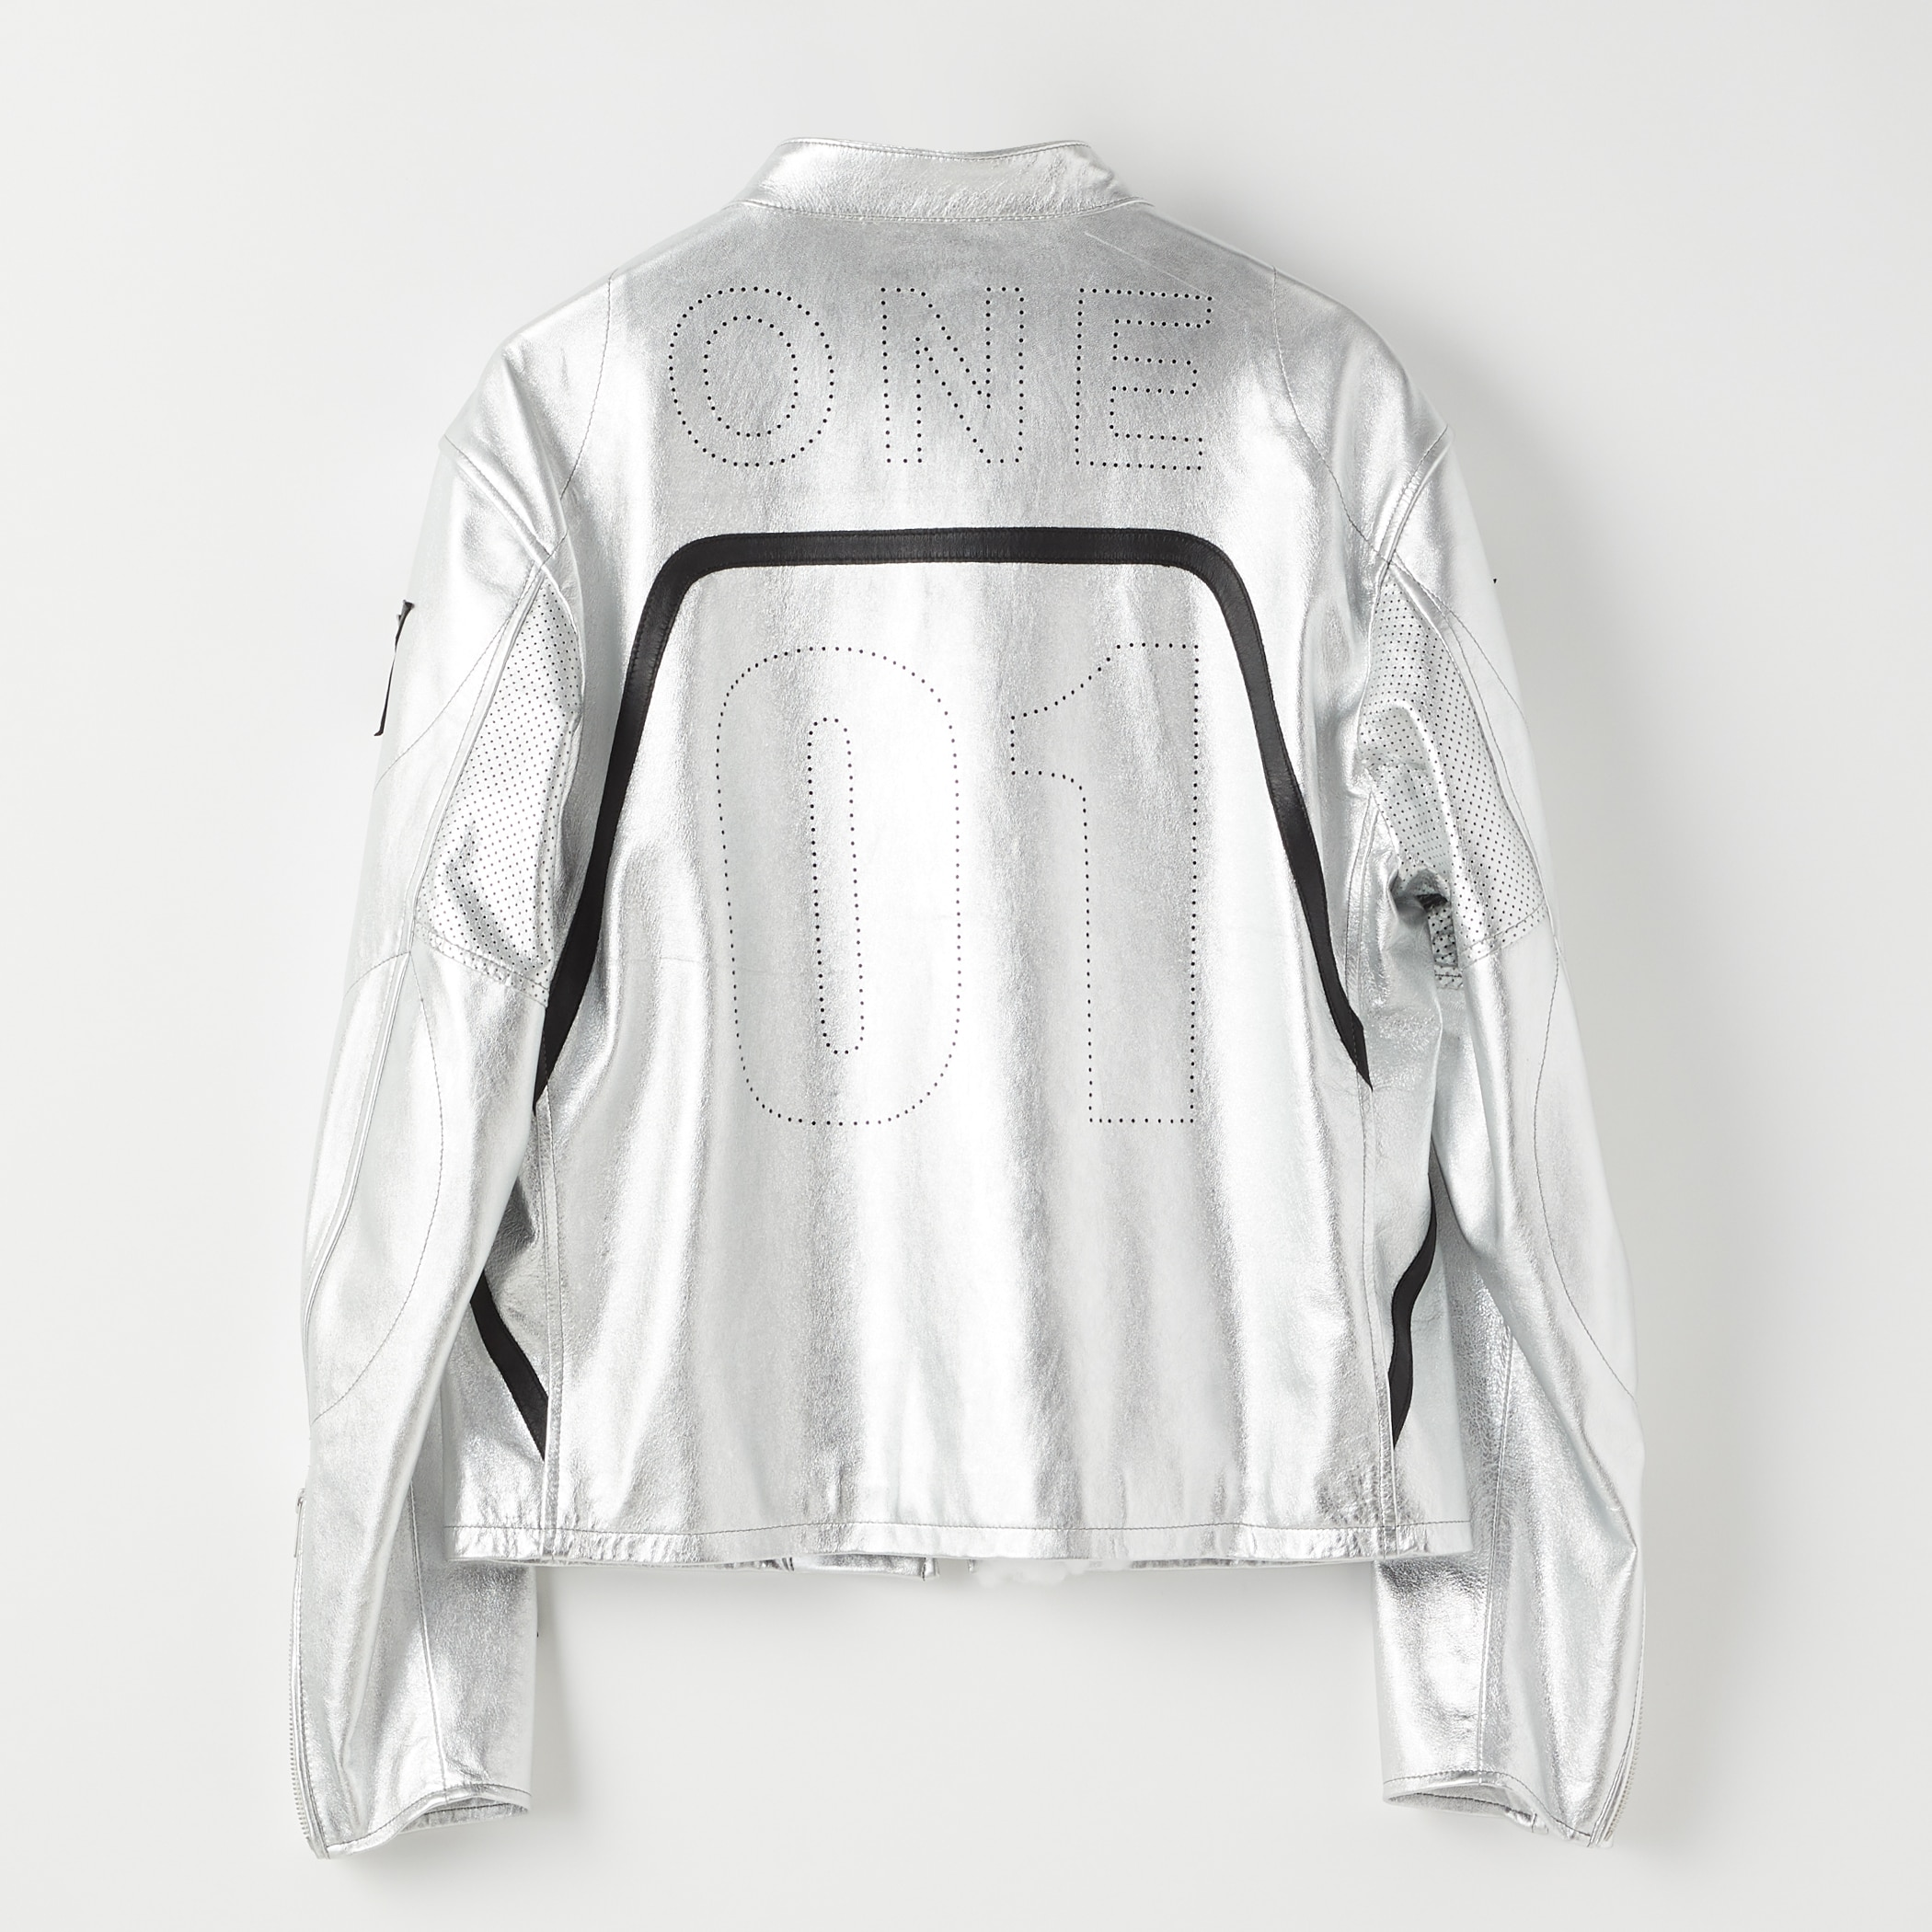 SIGNATURE RACING JACKET 詳細画像 Silver 2